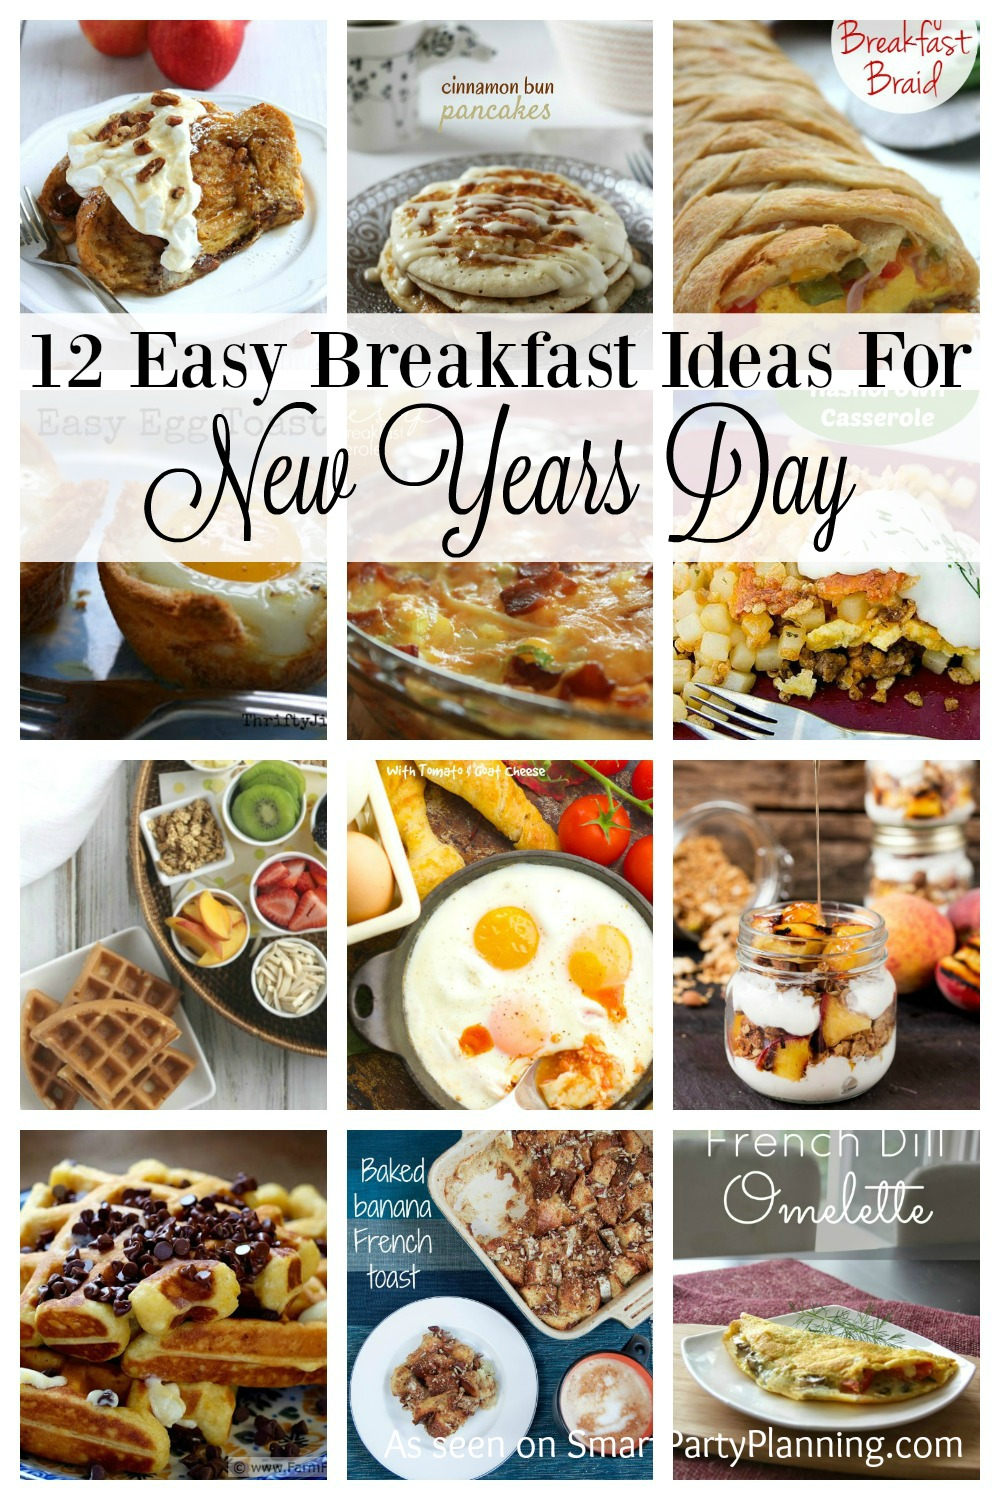 12 Easy Breakfast Ideas for New Years Day